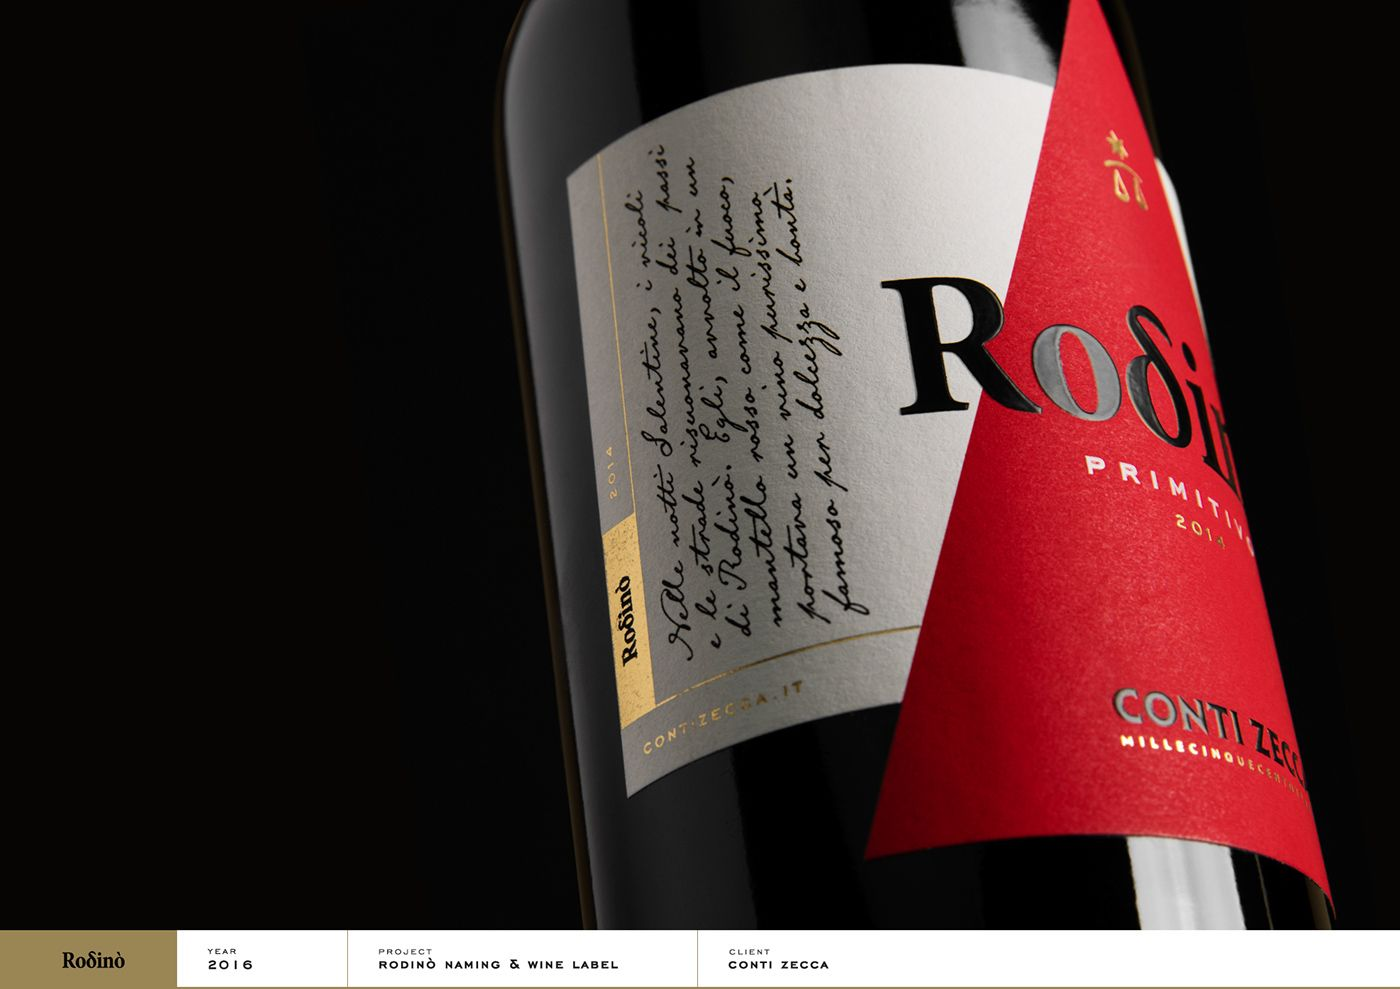 Check Out This Behance Project Rodino Conti Zecca Wine Label Https Www Behance Net Gallery 4639590 Wine Label Wine Label Typography Wine Label Design